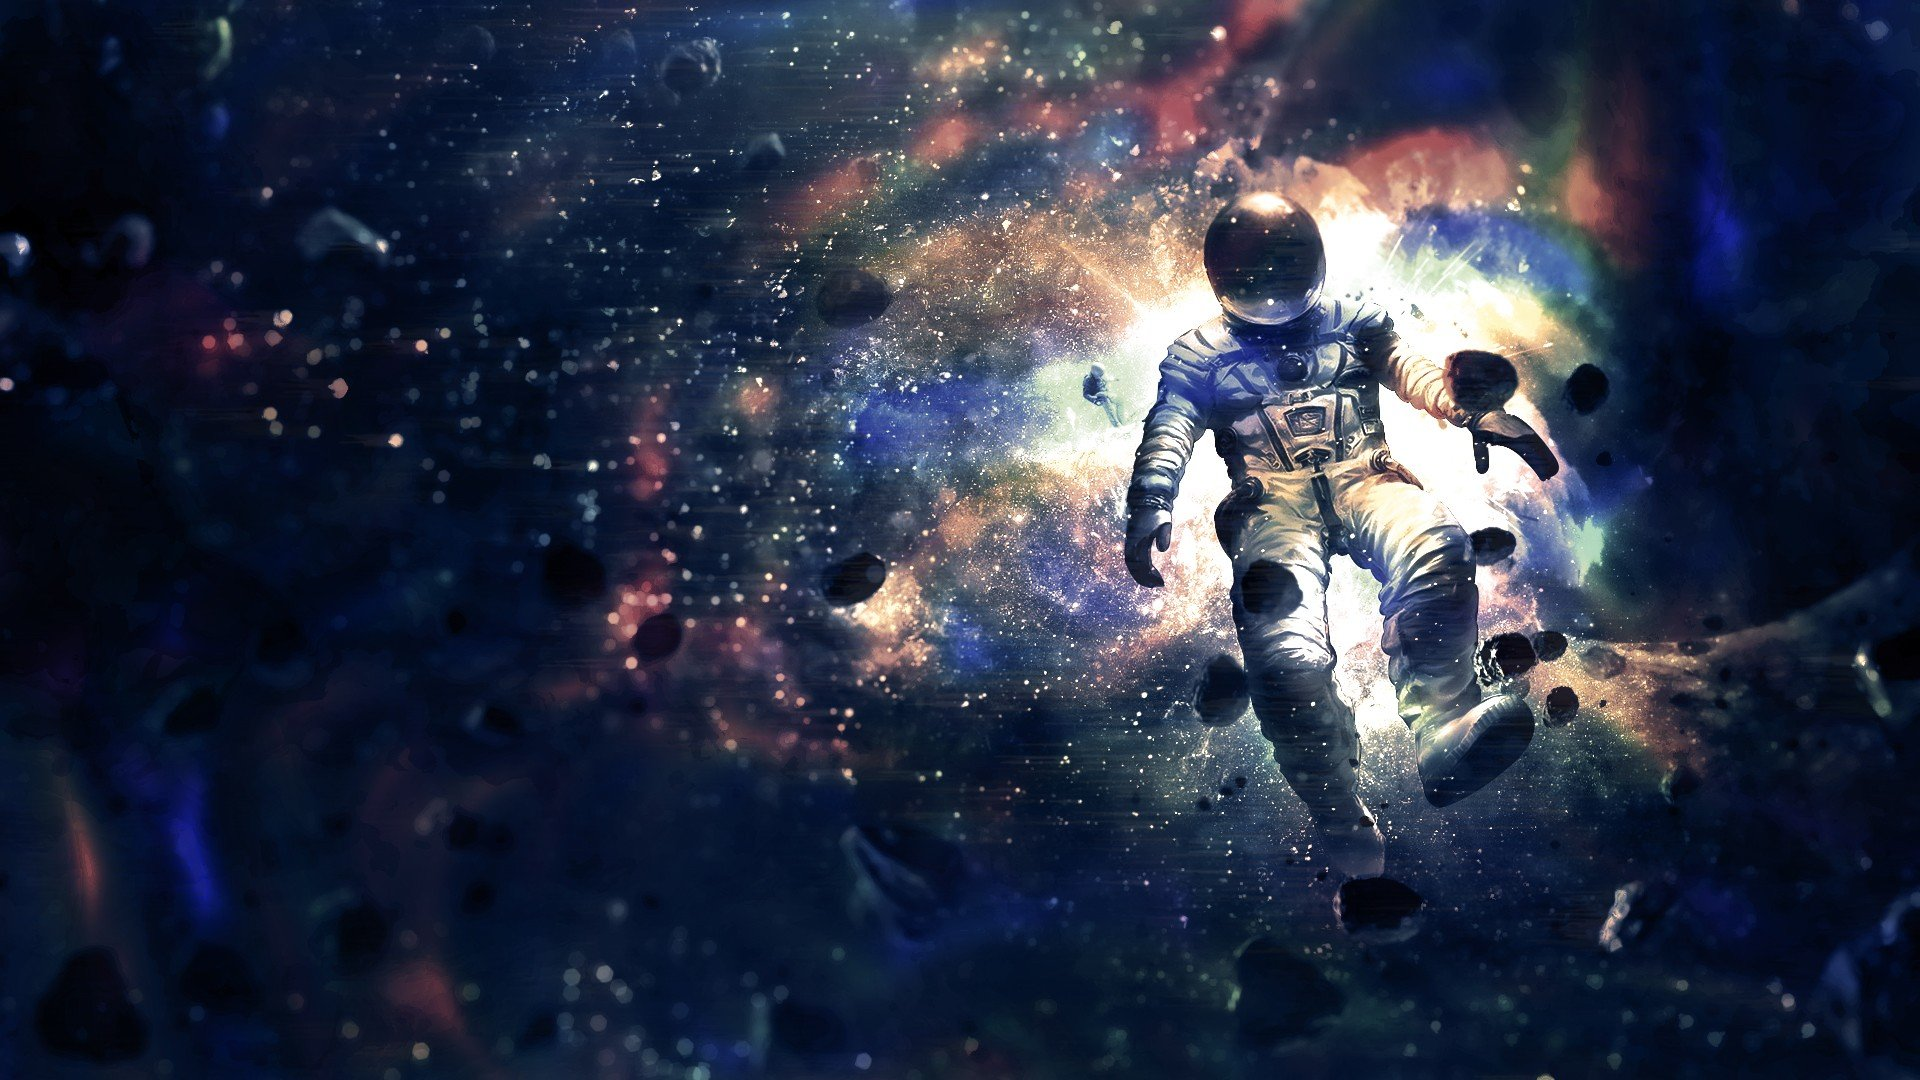 Space calm lsd drugs fantacy hd wallpapers desktop for Sfondi chimica